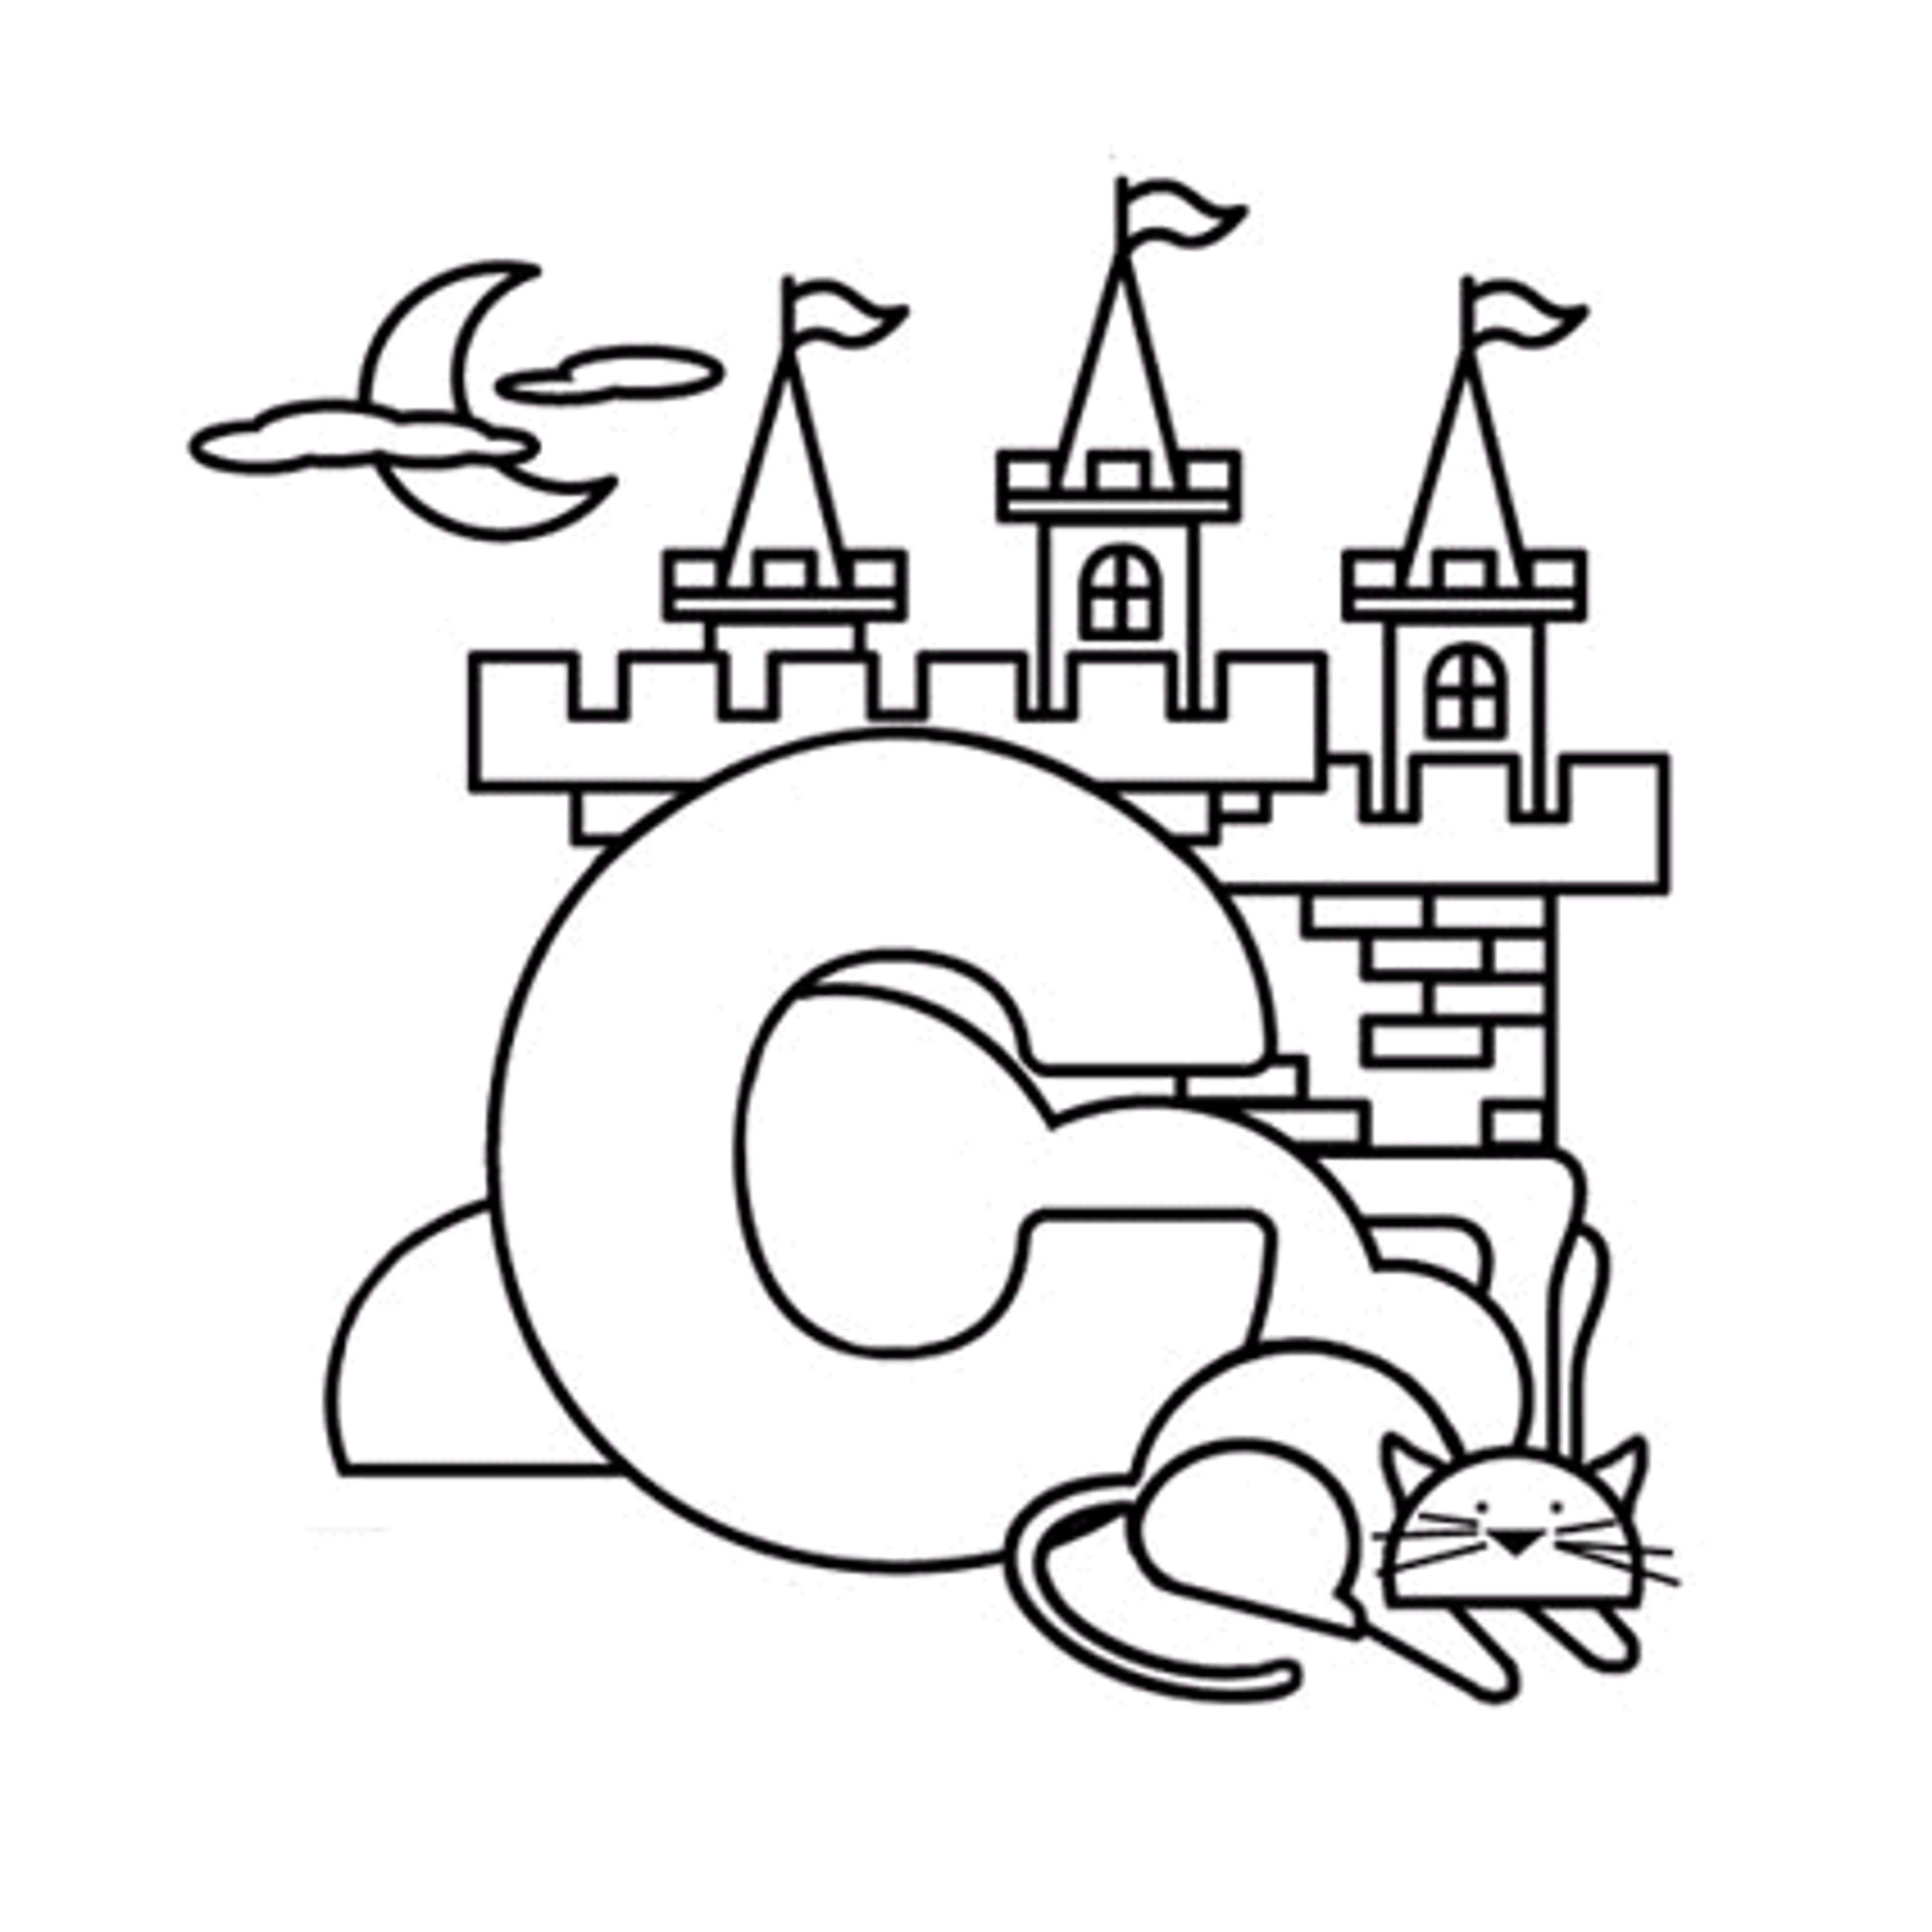 2000x2000 Letter C With Animals Coloring Page Free Printable Pages Within